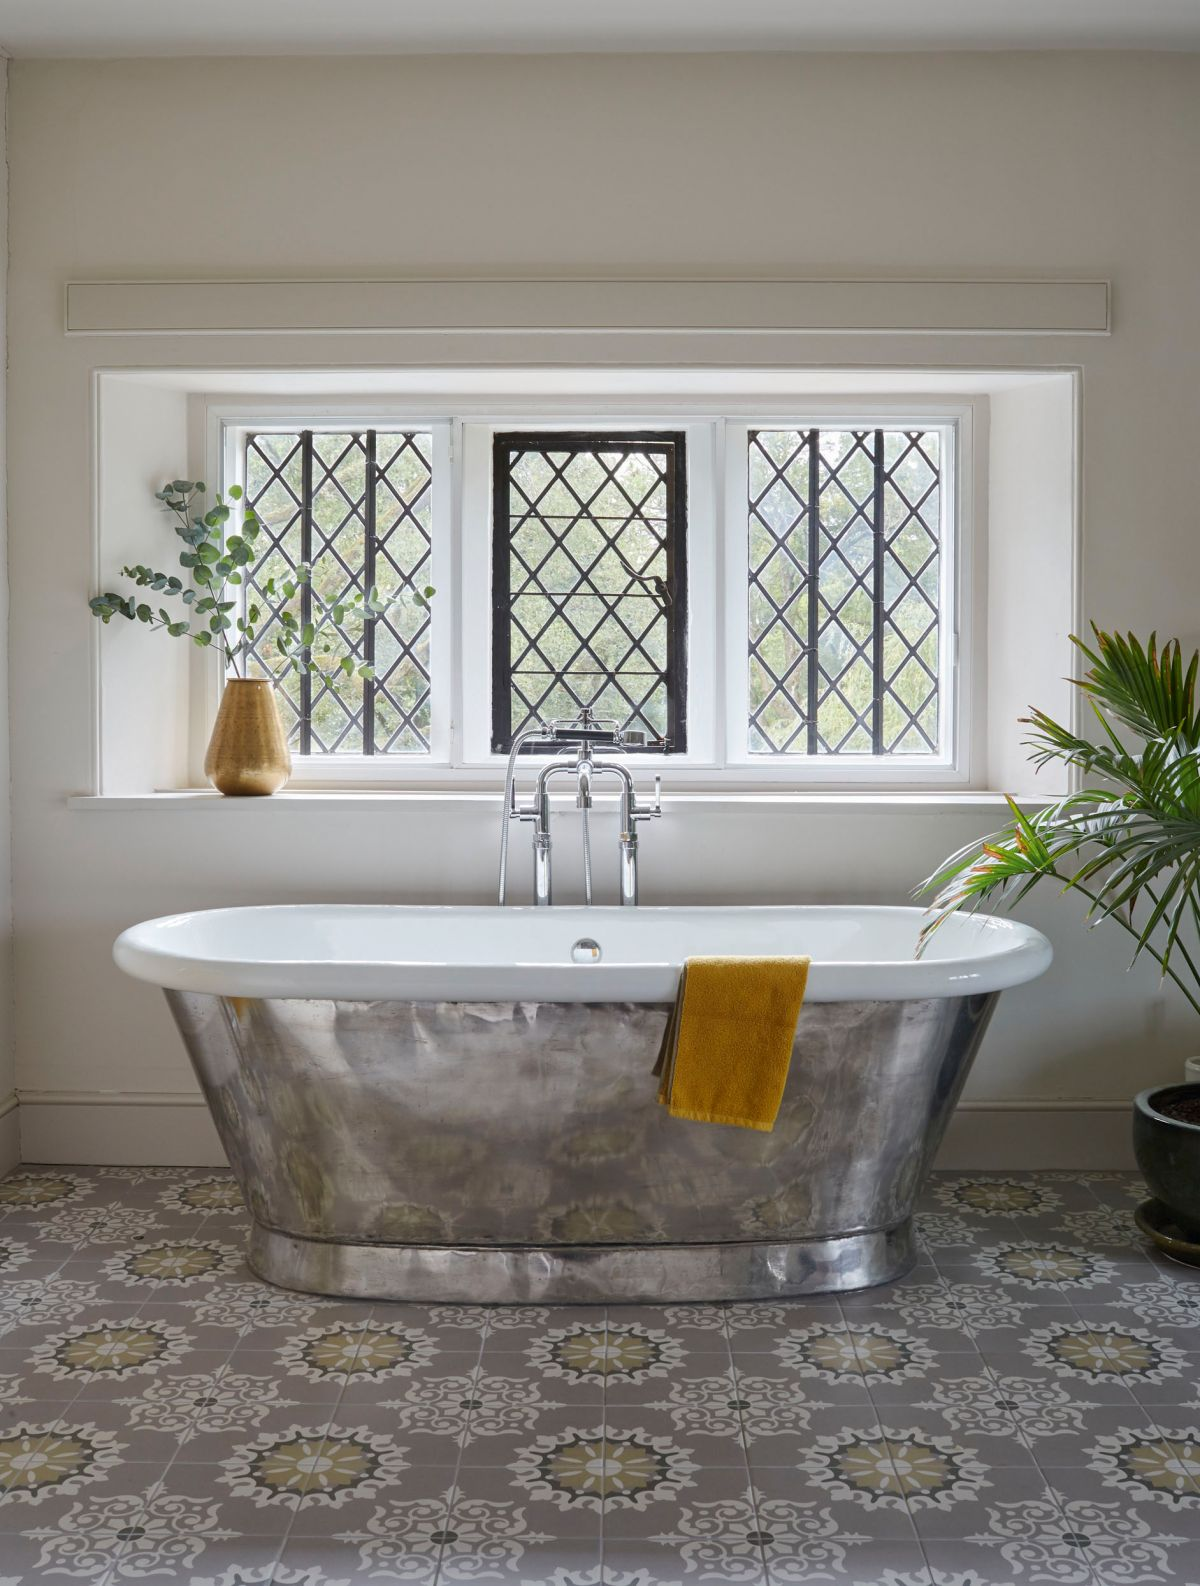 Luxury bathrooms: 21 ways to get a hotel spa look | Real Homes